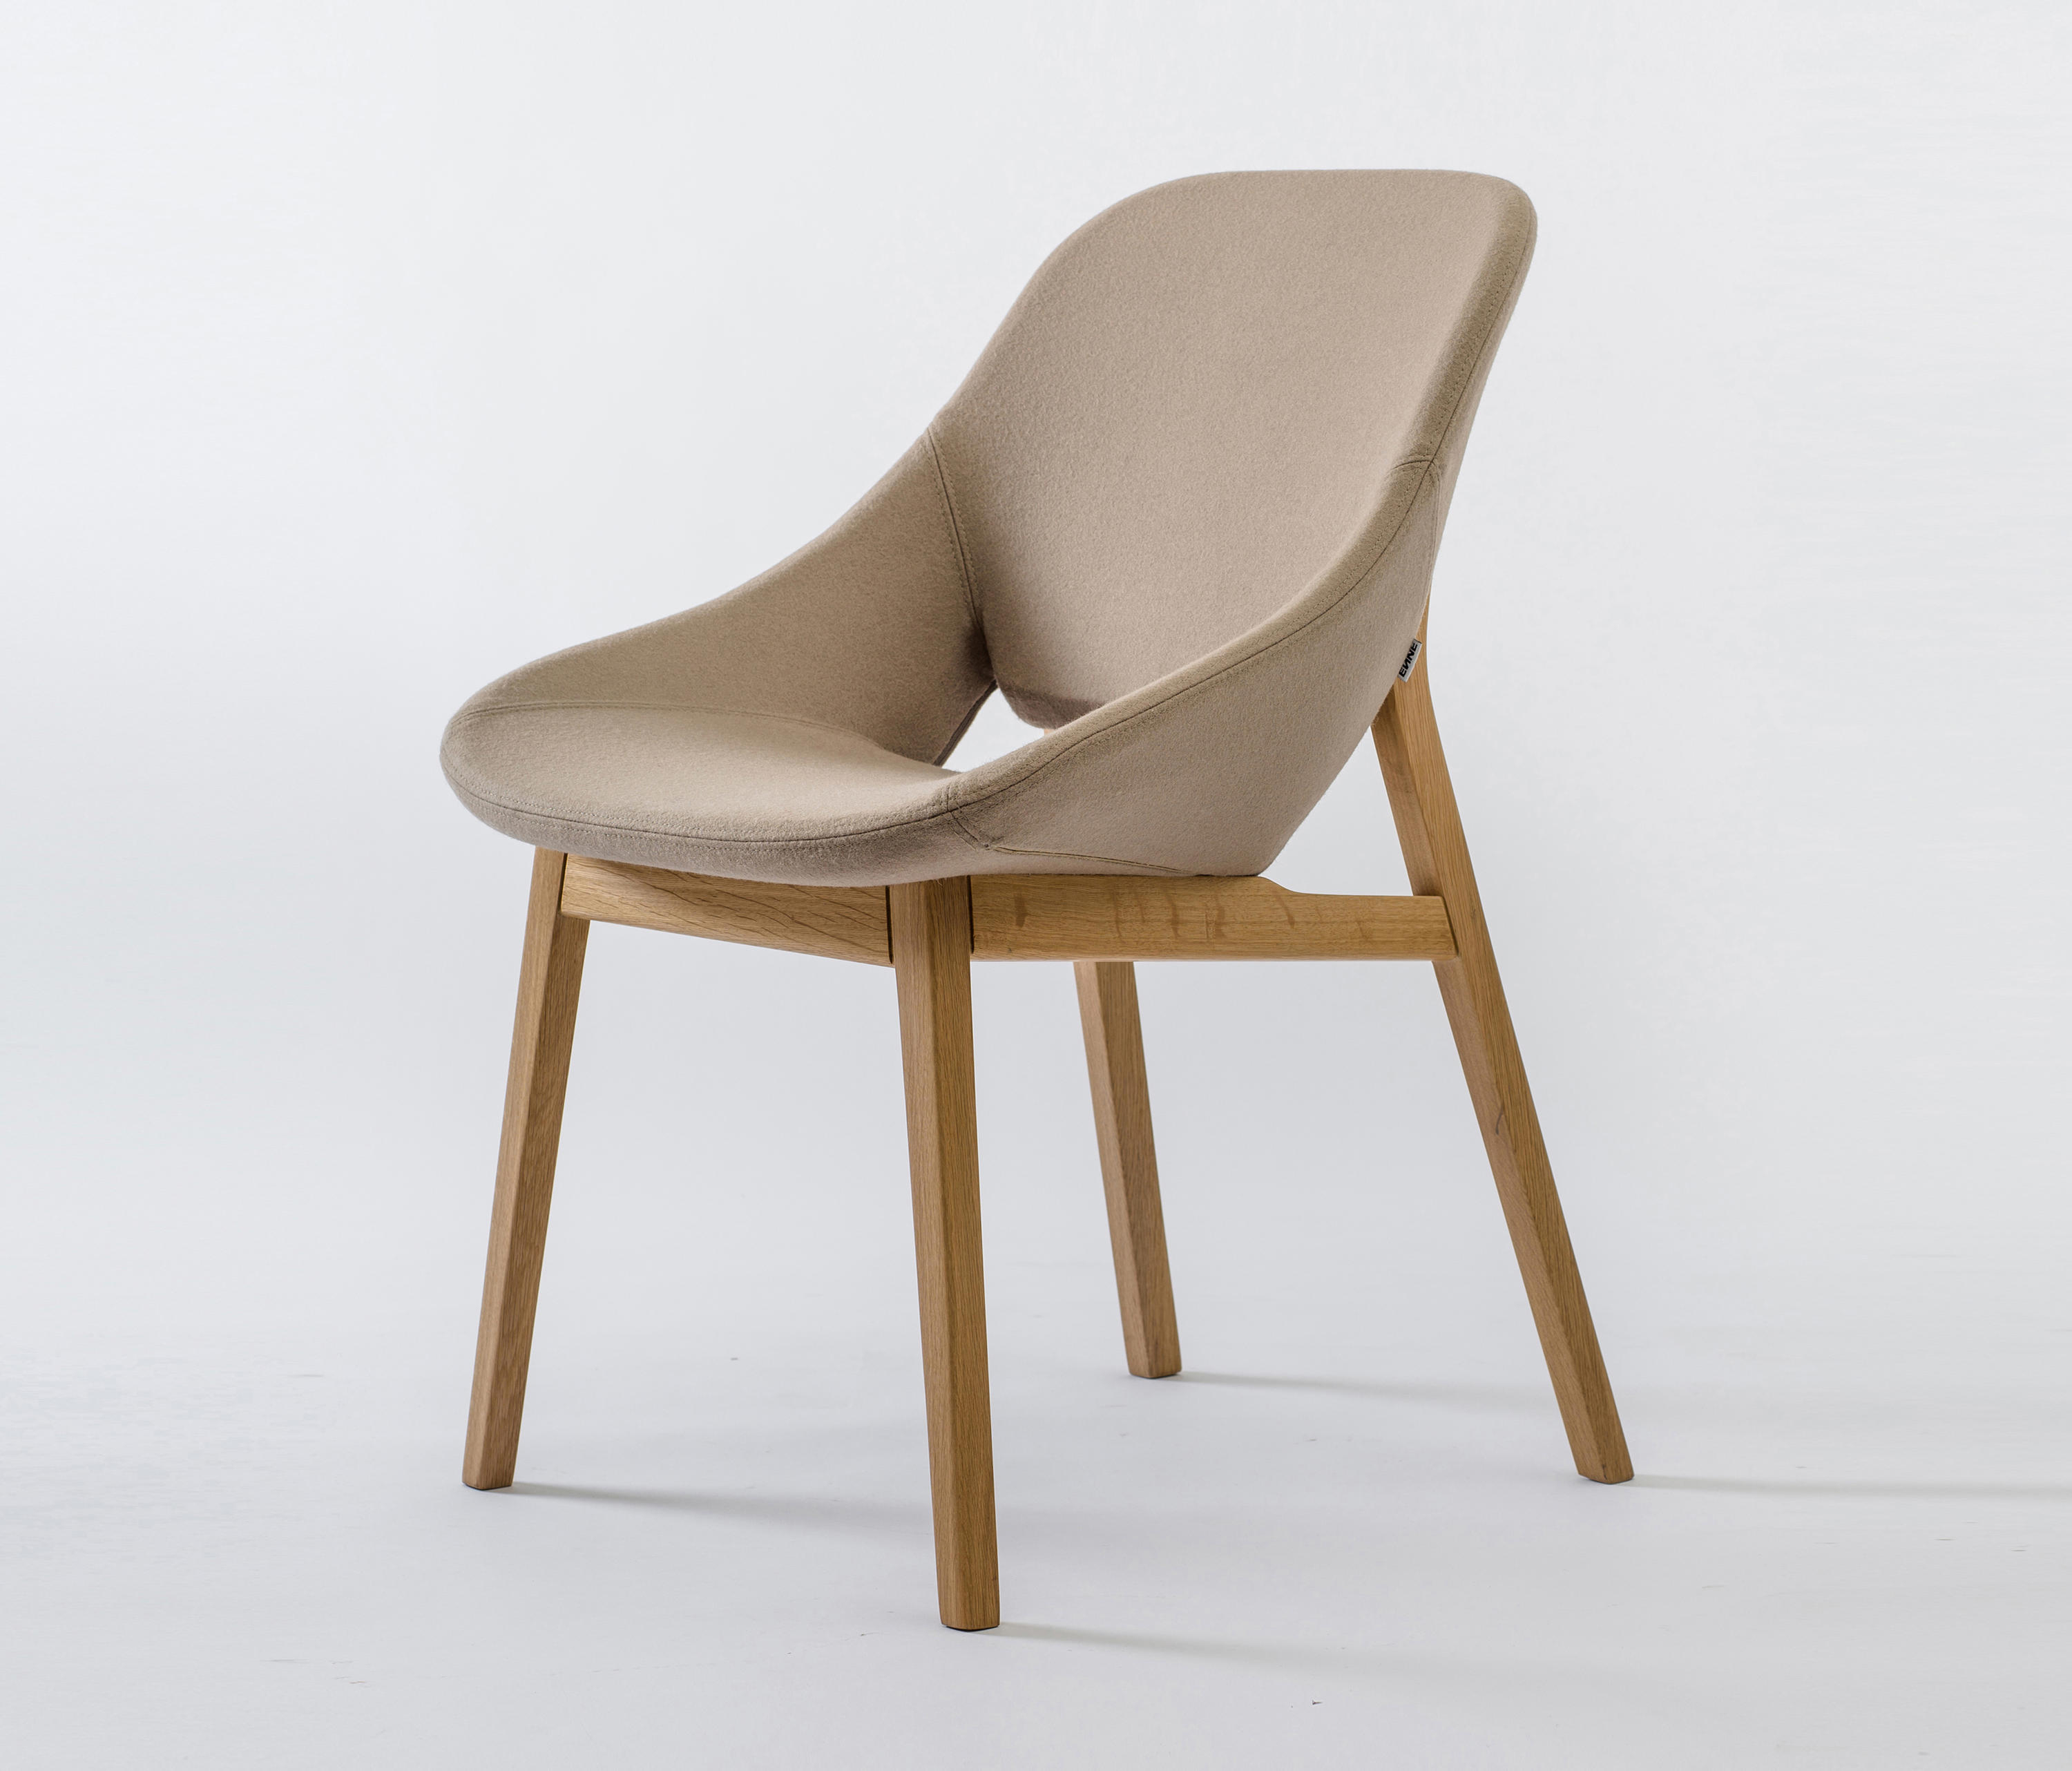 Grace - Chairs From Enne | Architonic inside Grace Sofa Chairs